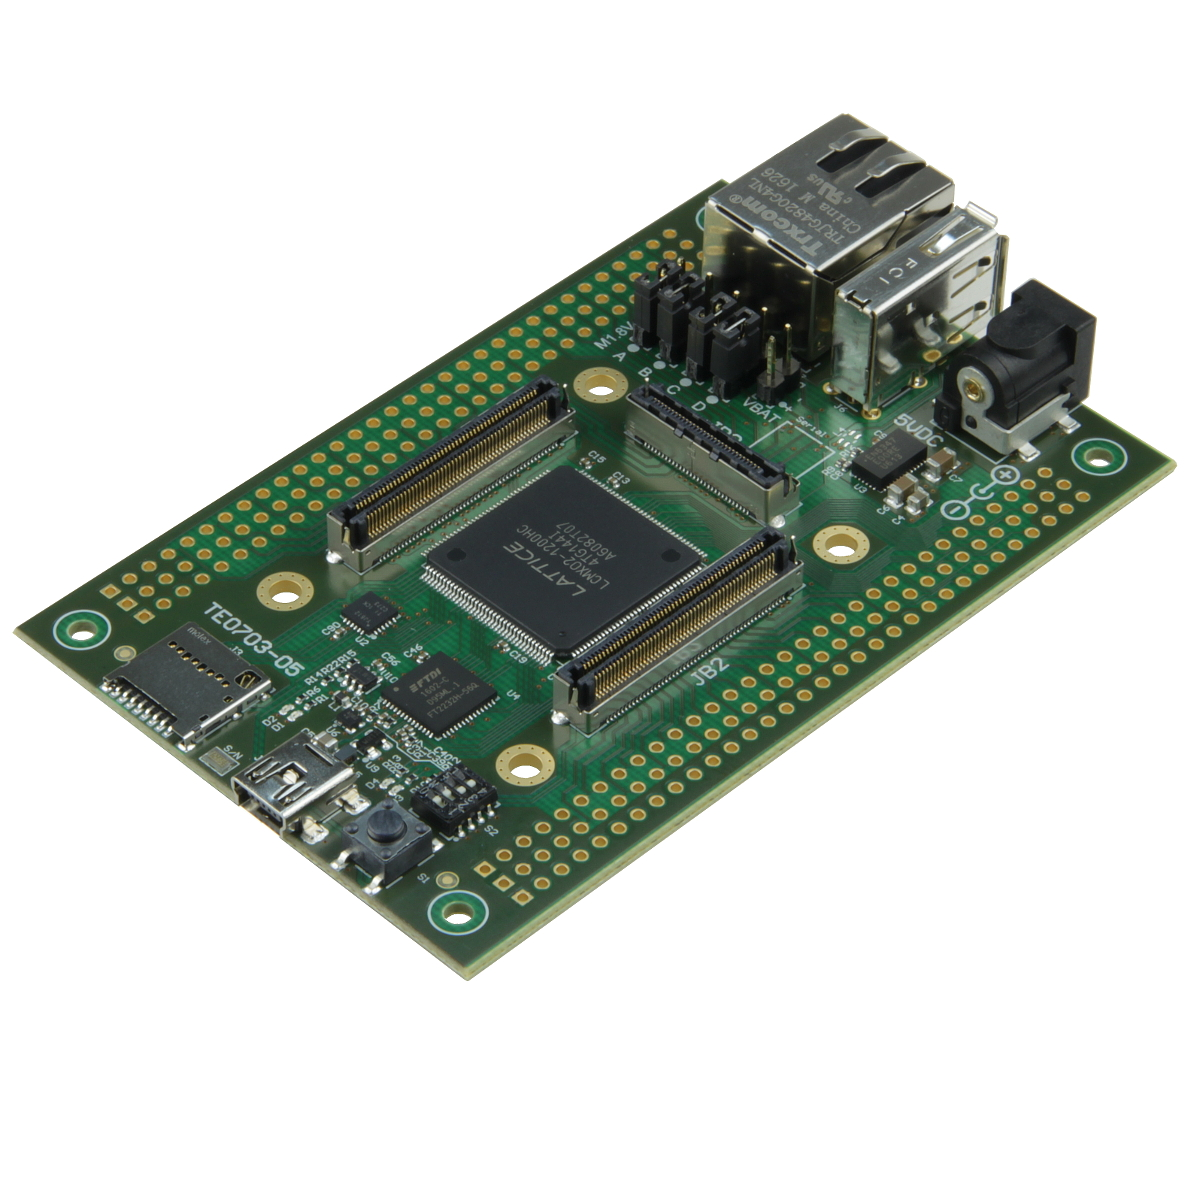 TE0703 carrier board